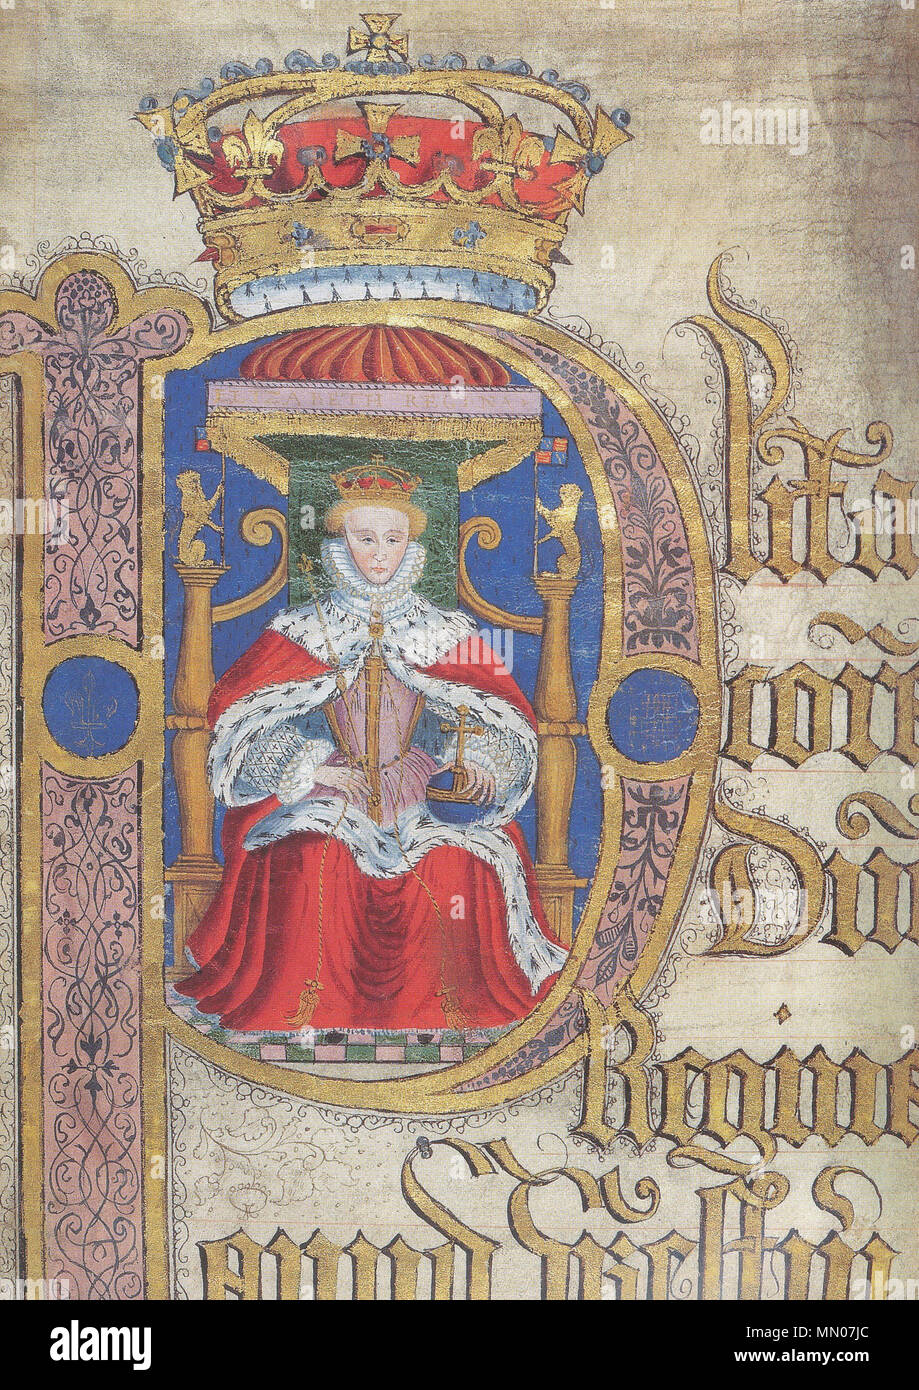 English: Illuminated initial membrane, with portrait of